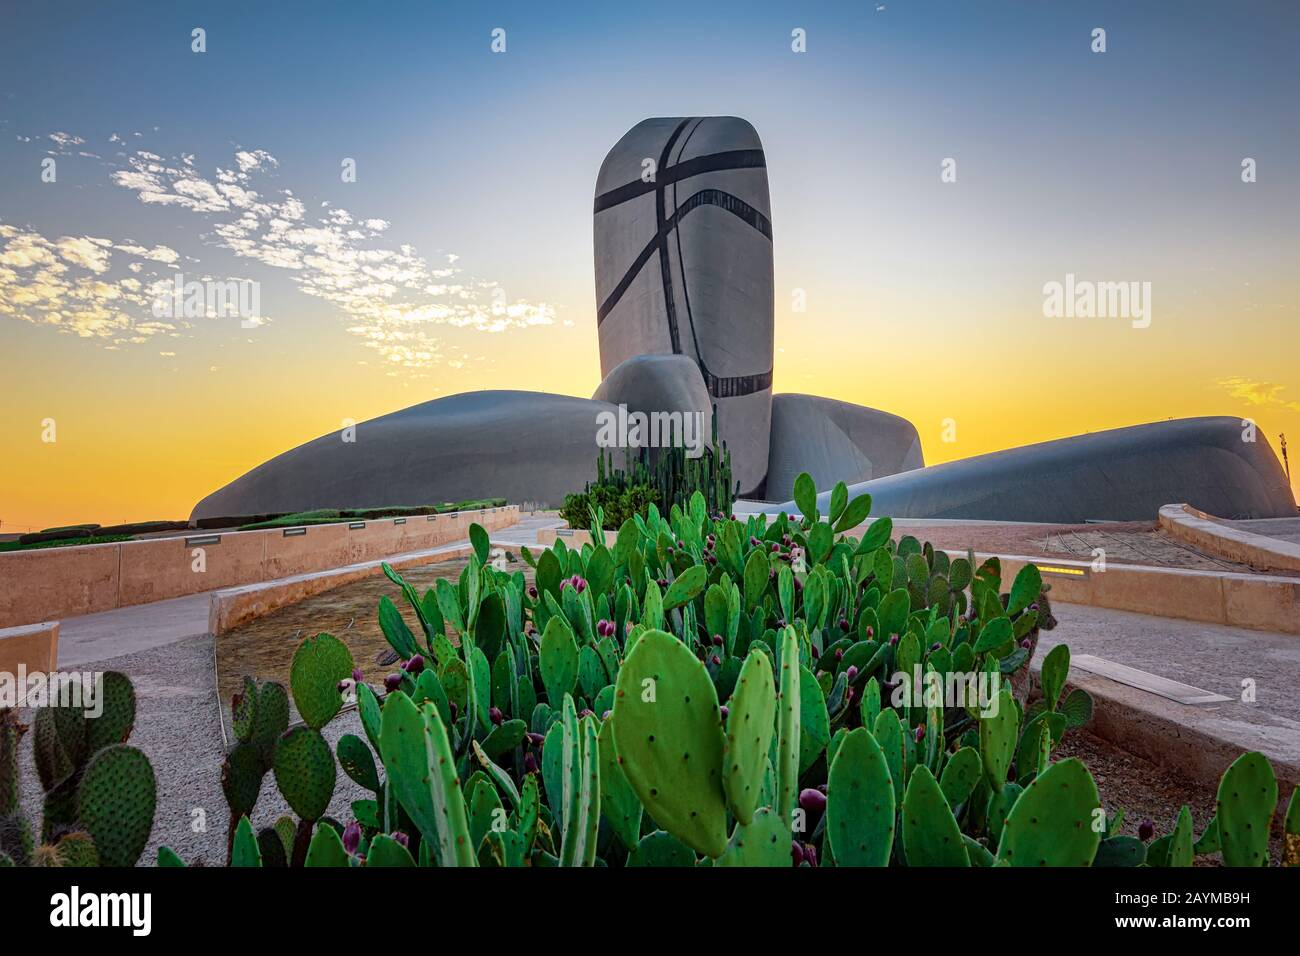 King Abdulaziz Center for World Culture (Ithra) City :Dammam, Country : Saudi Arabia. Photo was taken on Month of February 8th 2020. Stock Photo